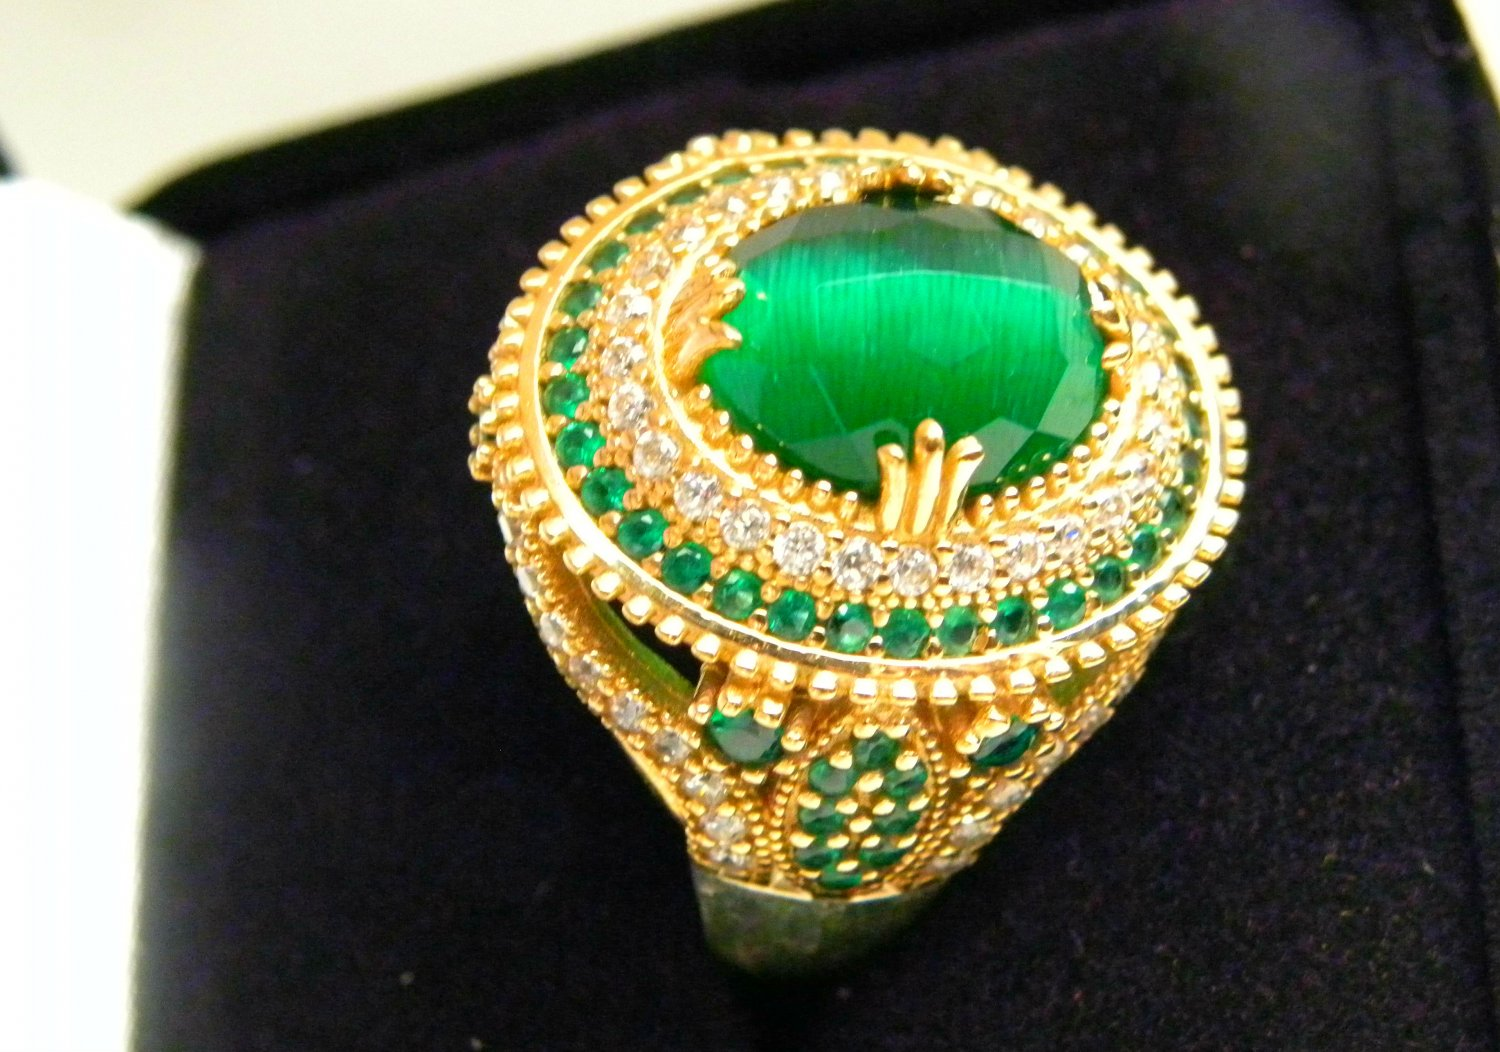 GORGEOUS faux EMERALD N CAT'S EYE 925 STERLING SILVER RING with WHITE TOPAZ